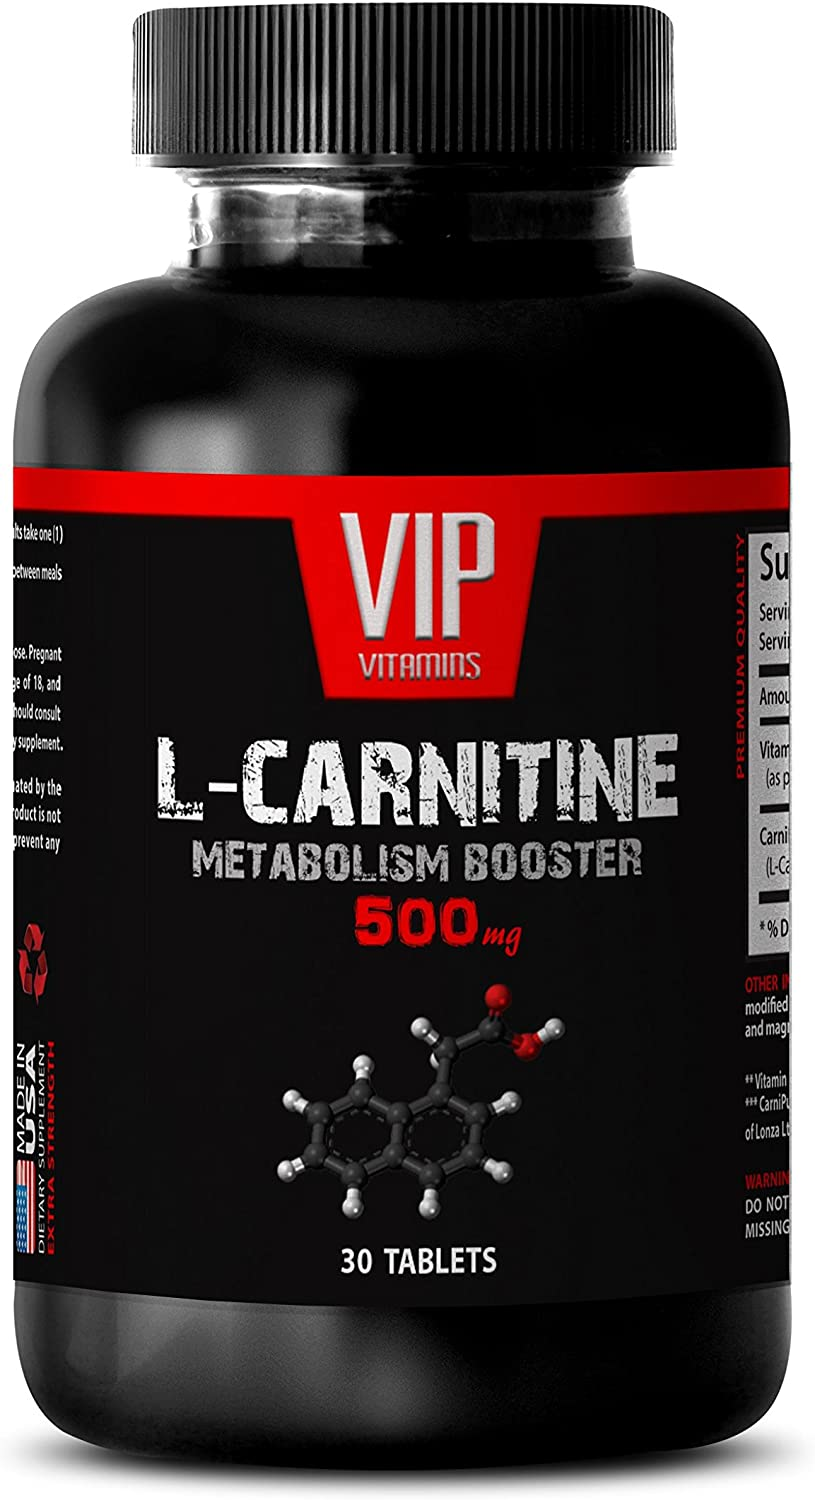 l carnitine Tartrate Powder - for Muscles SALENEW Max 54% OFF very popular Lean Carnitine 500mg